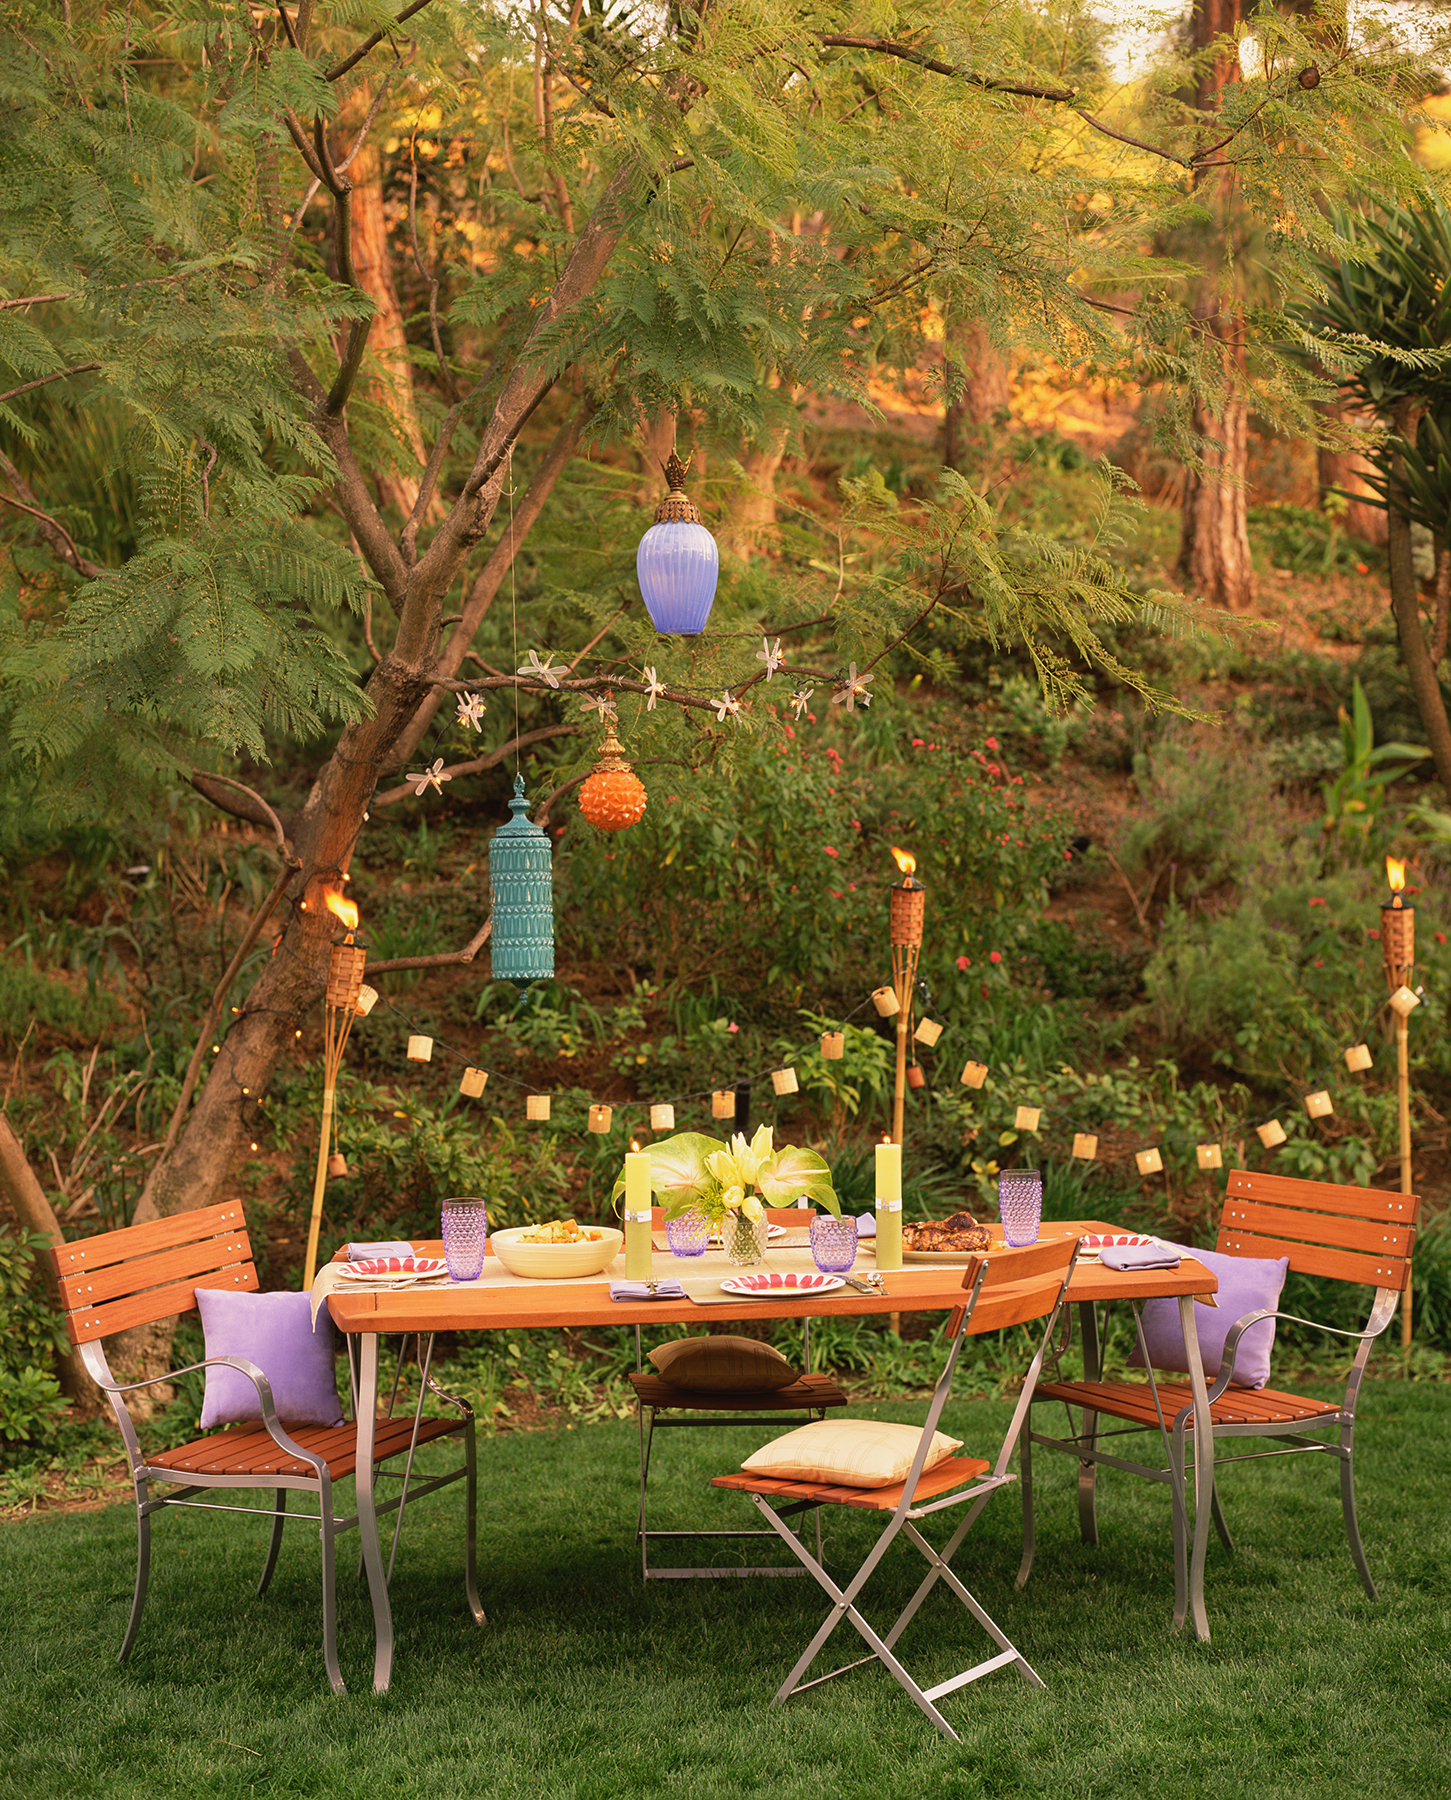 b4e85af61 17 Genius Tips and Ideas for an Effortless Outdoor Party